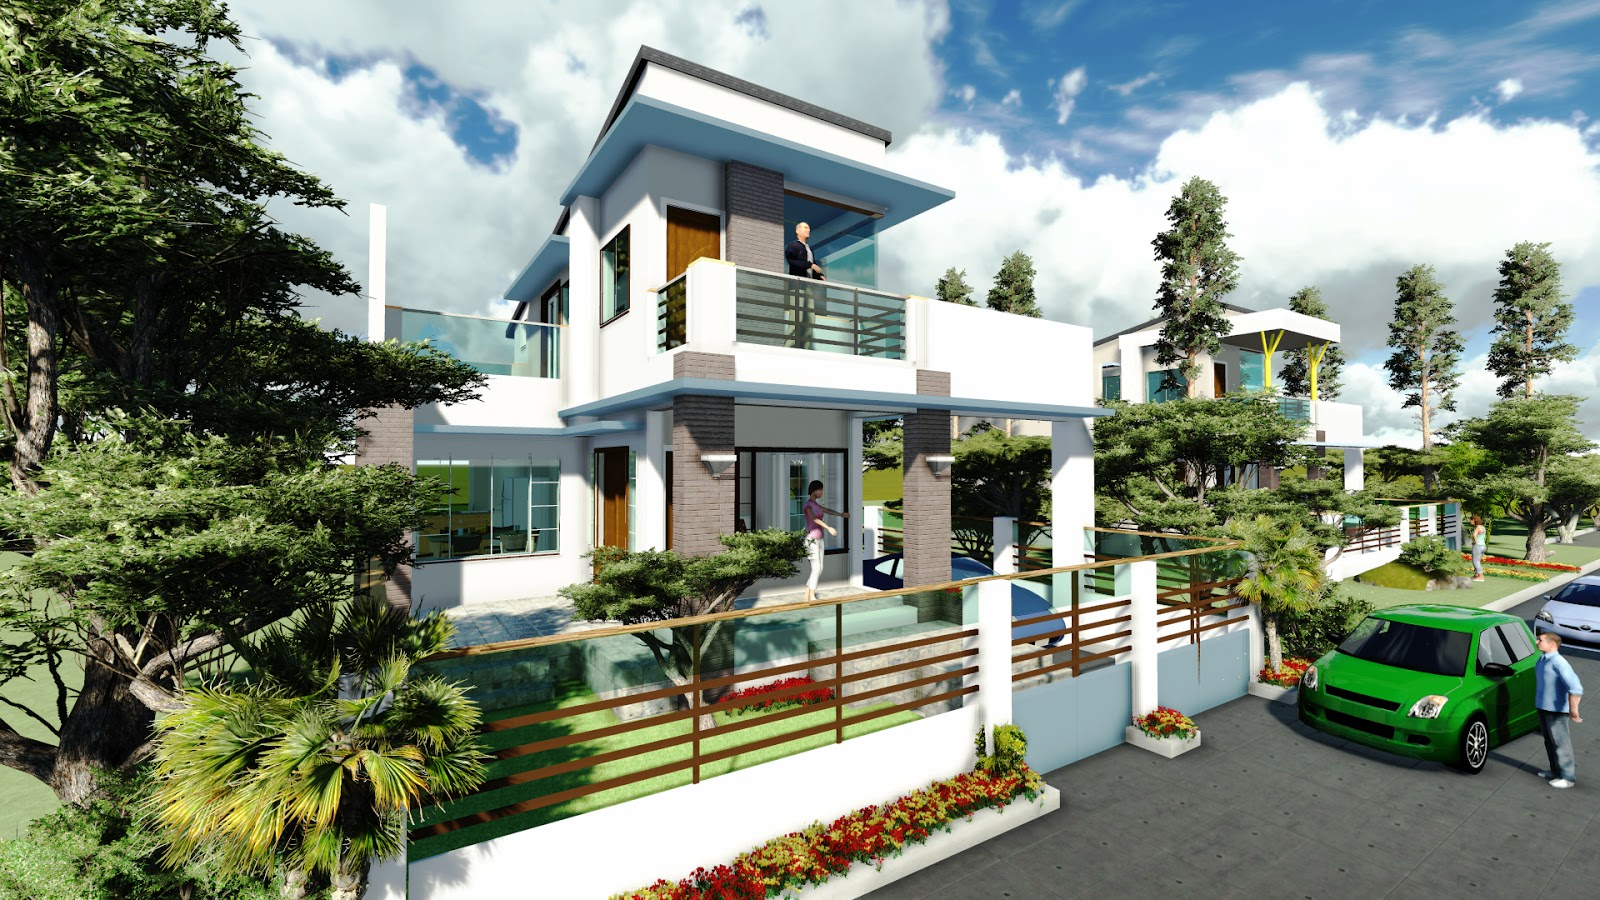 Architecture Design Houses Philippines architectural design house plans philippines | house design